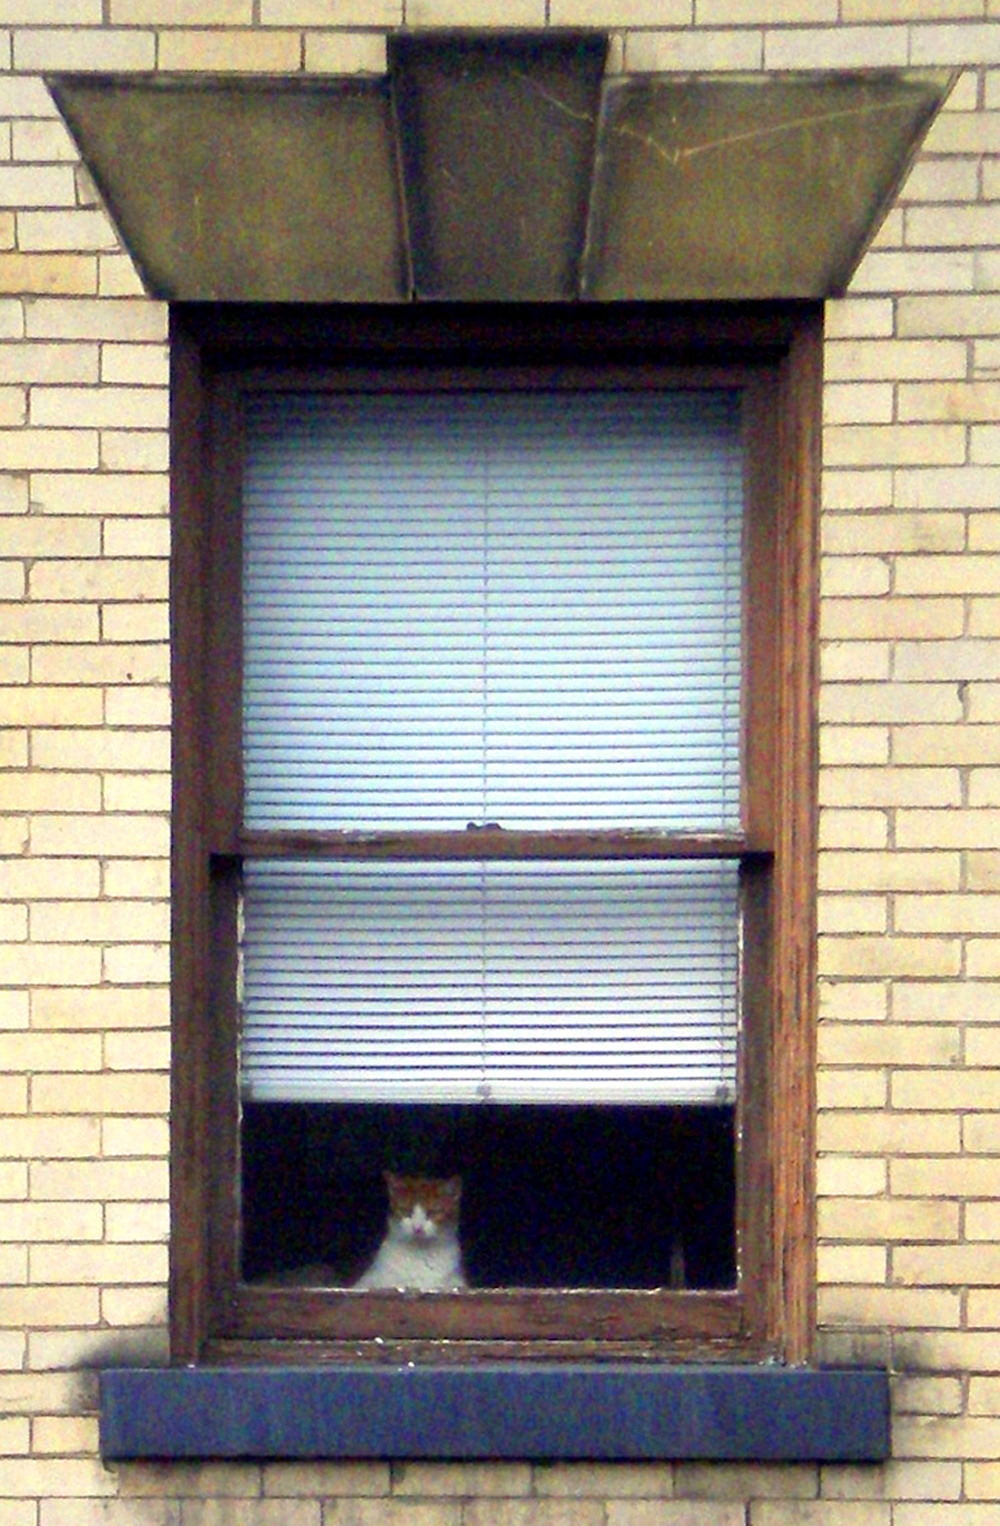 orange and white cat in window